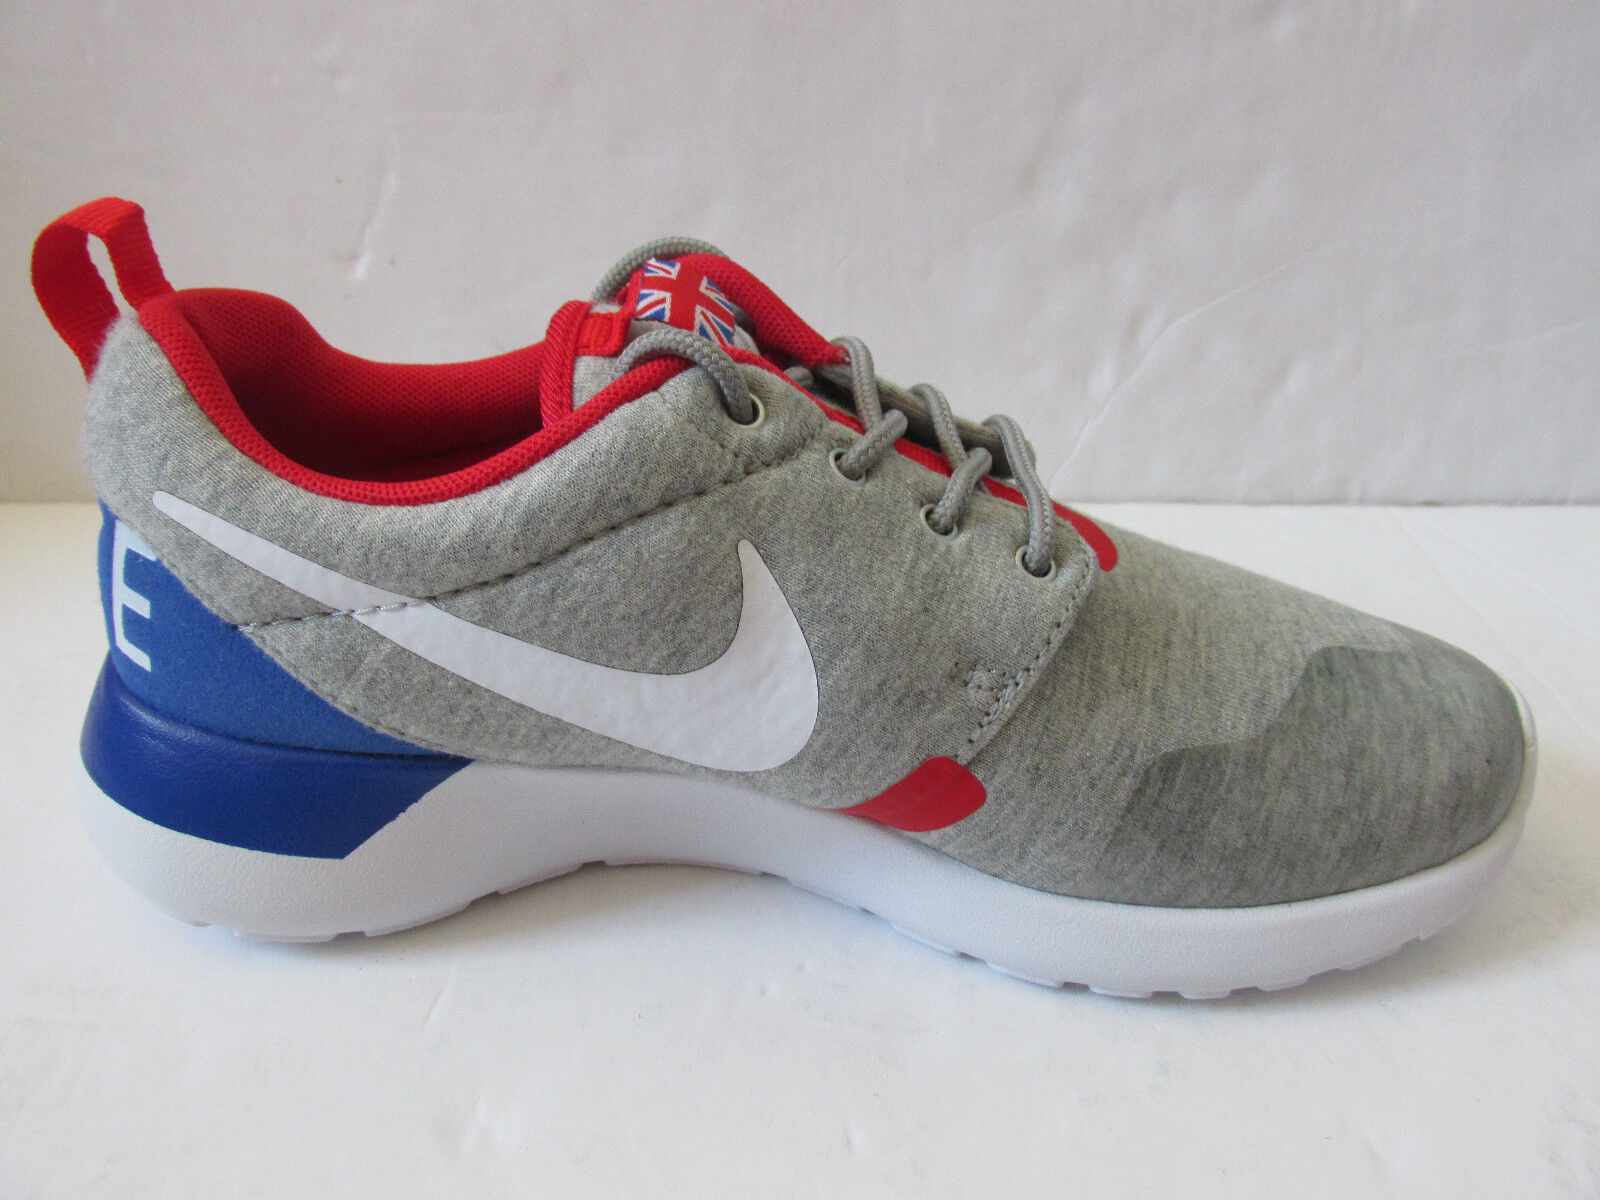 Nike rosherun QS (GS) sneakers running trainers 703935 002 sneakers (GS) schuhe ab2041